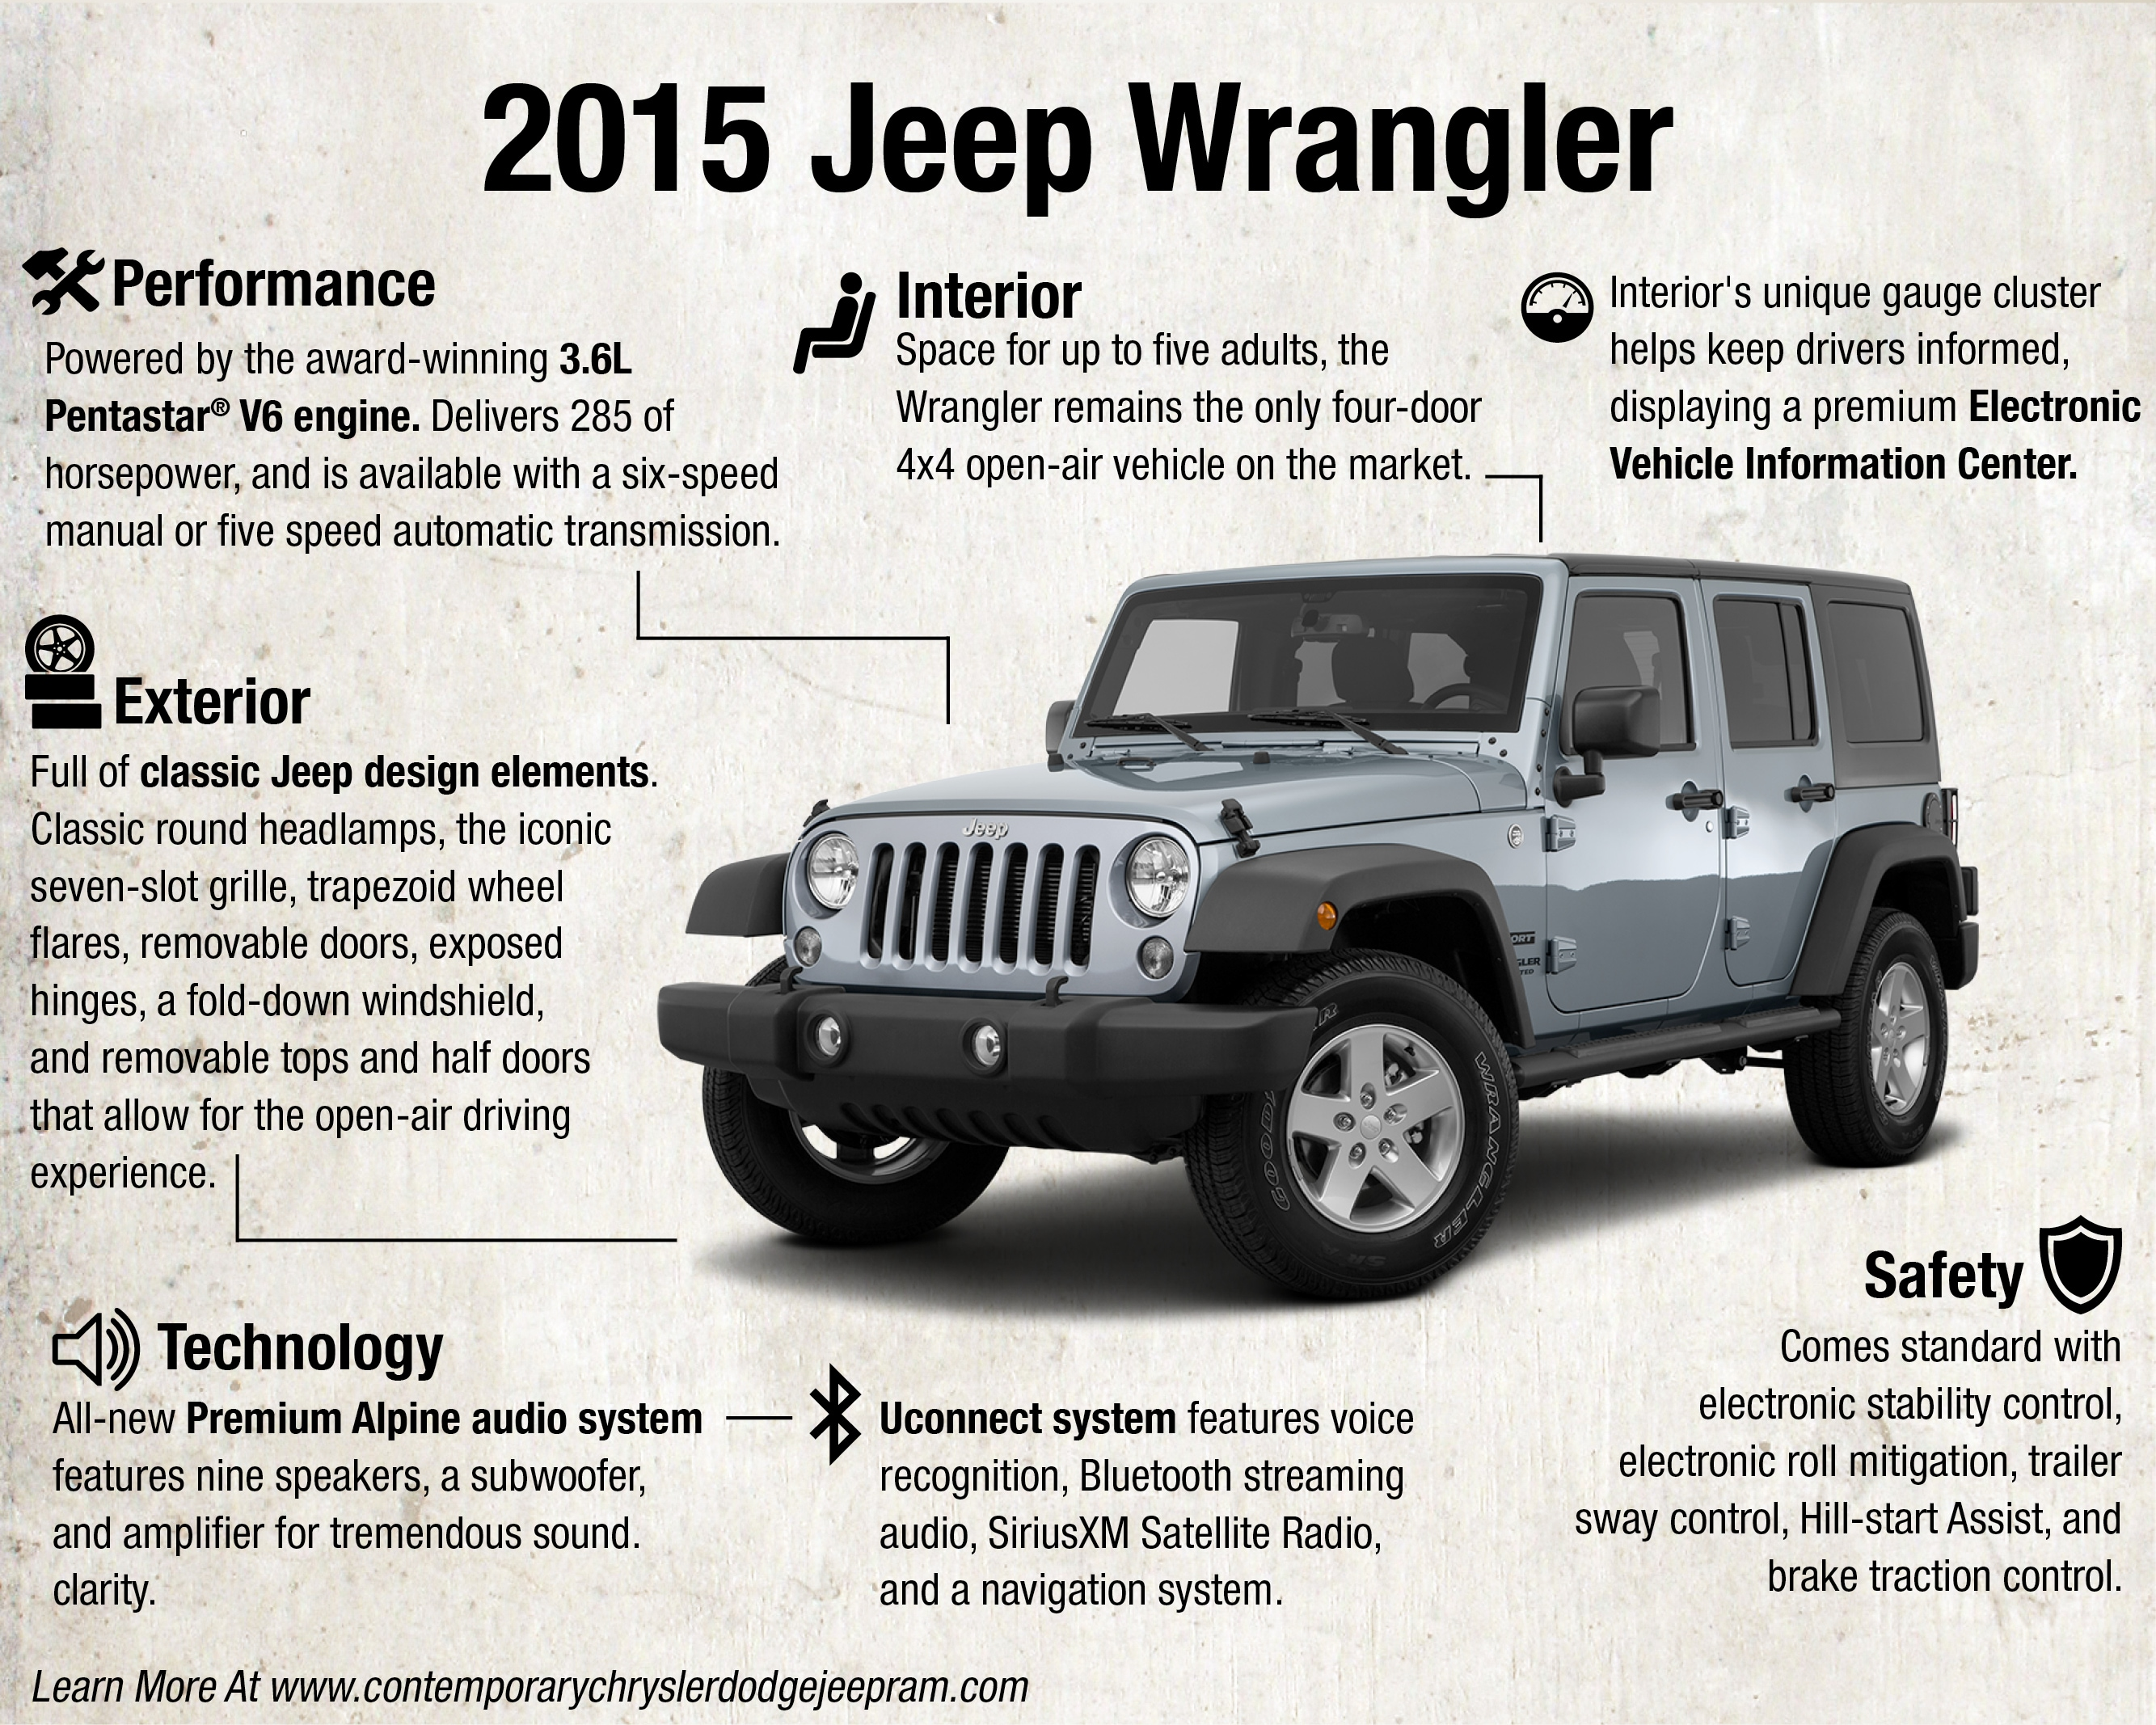 2015 jeep wrangler new hampshire | new hampshire jeep dealer